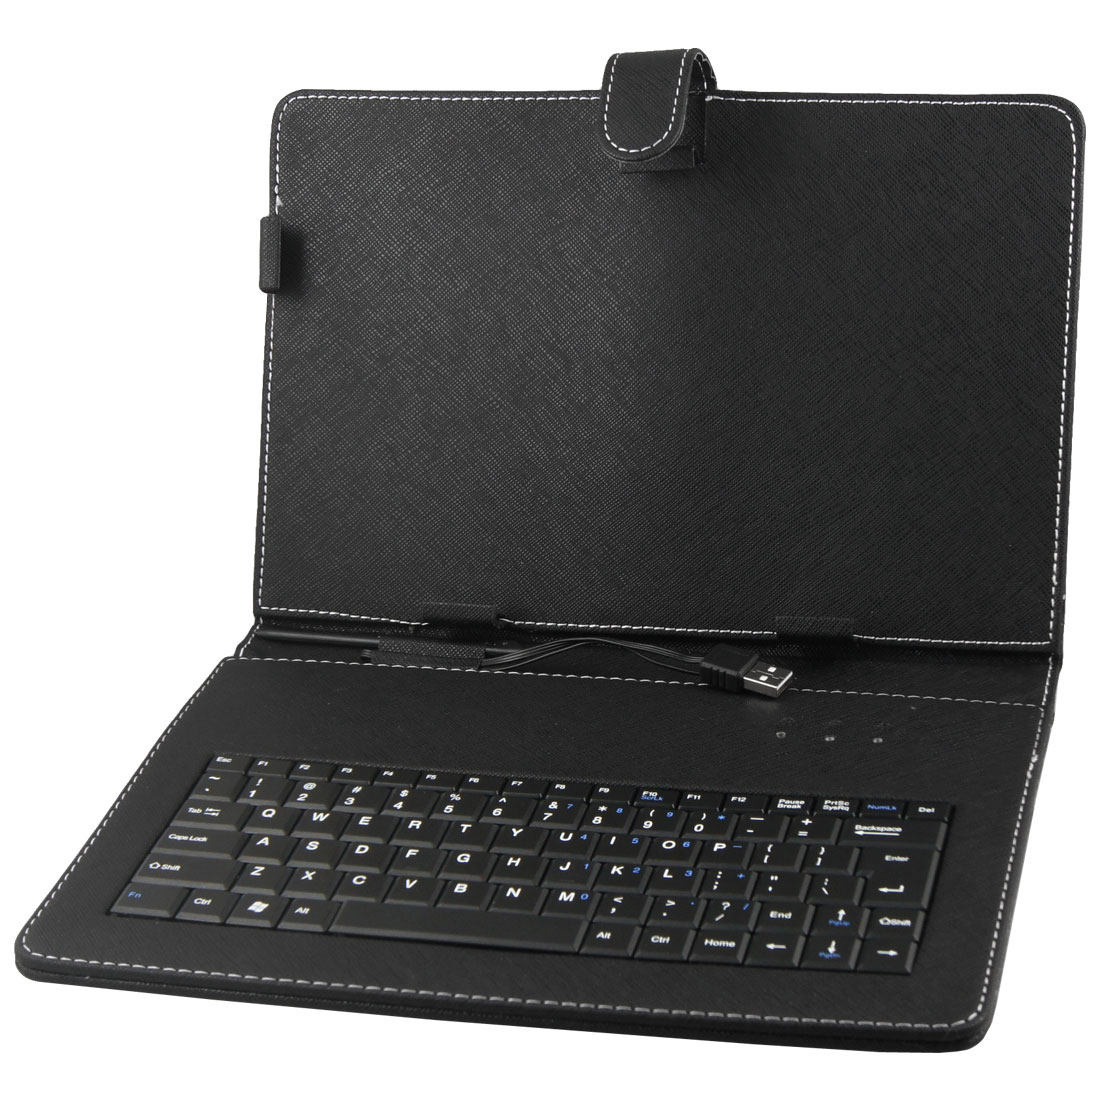 "PU Leather Case USB Keyboard for 10"" 10.1"" Tablet PC Android MID"